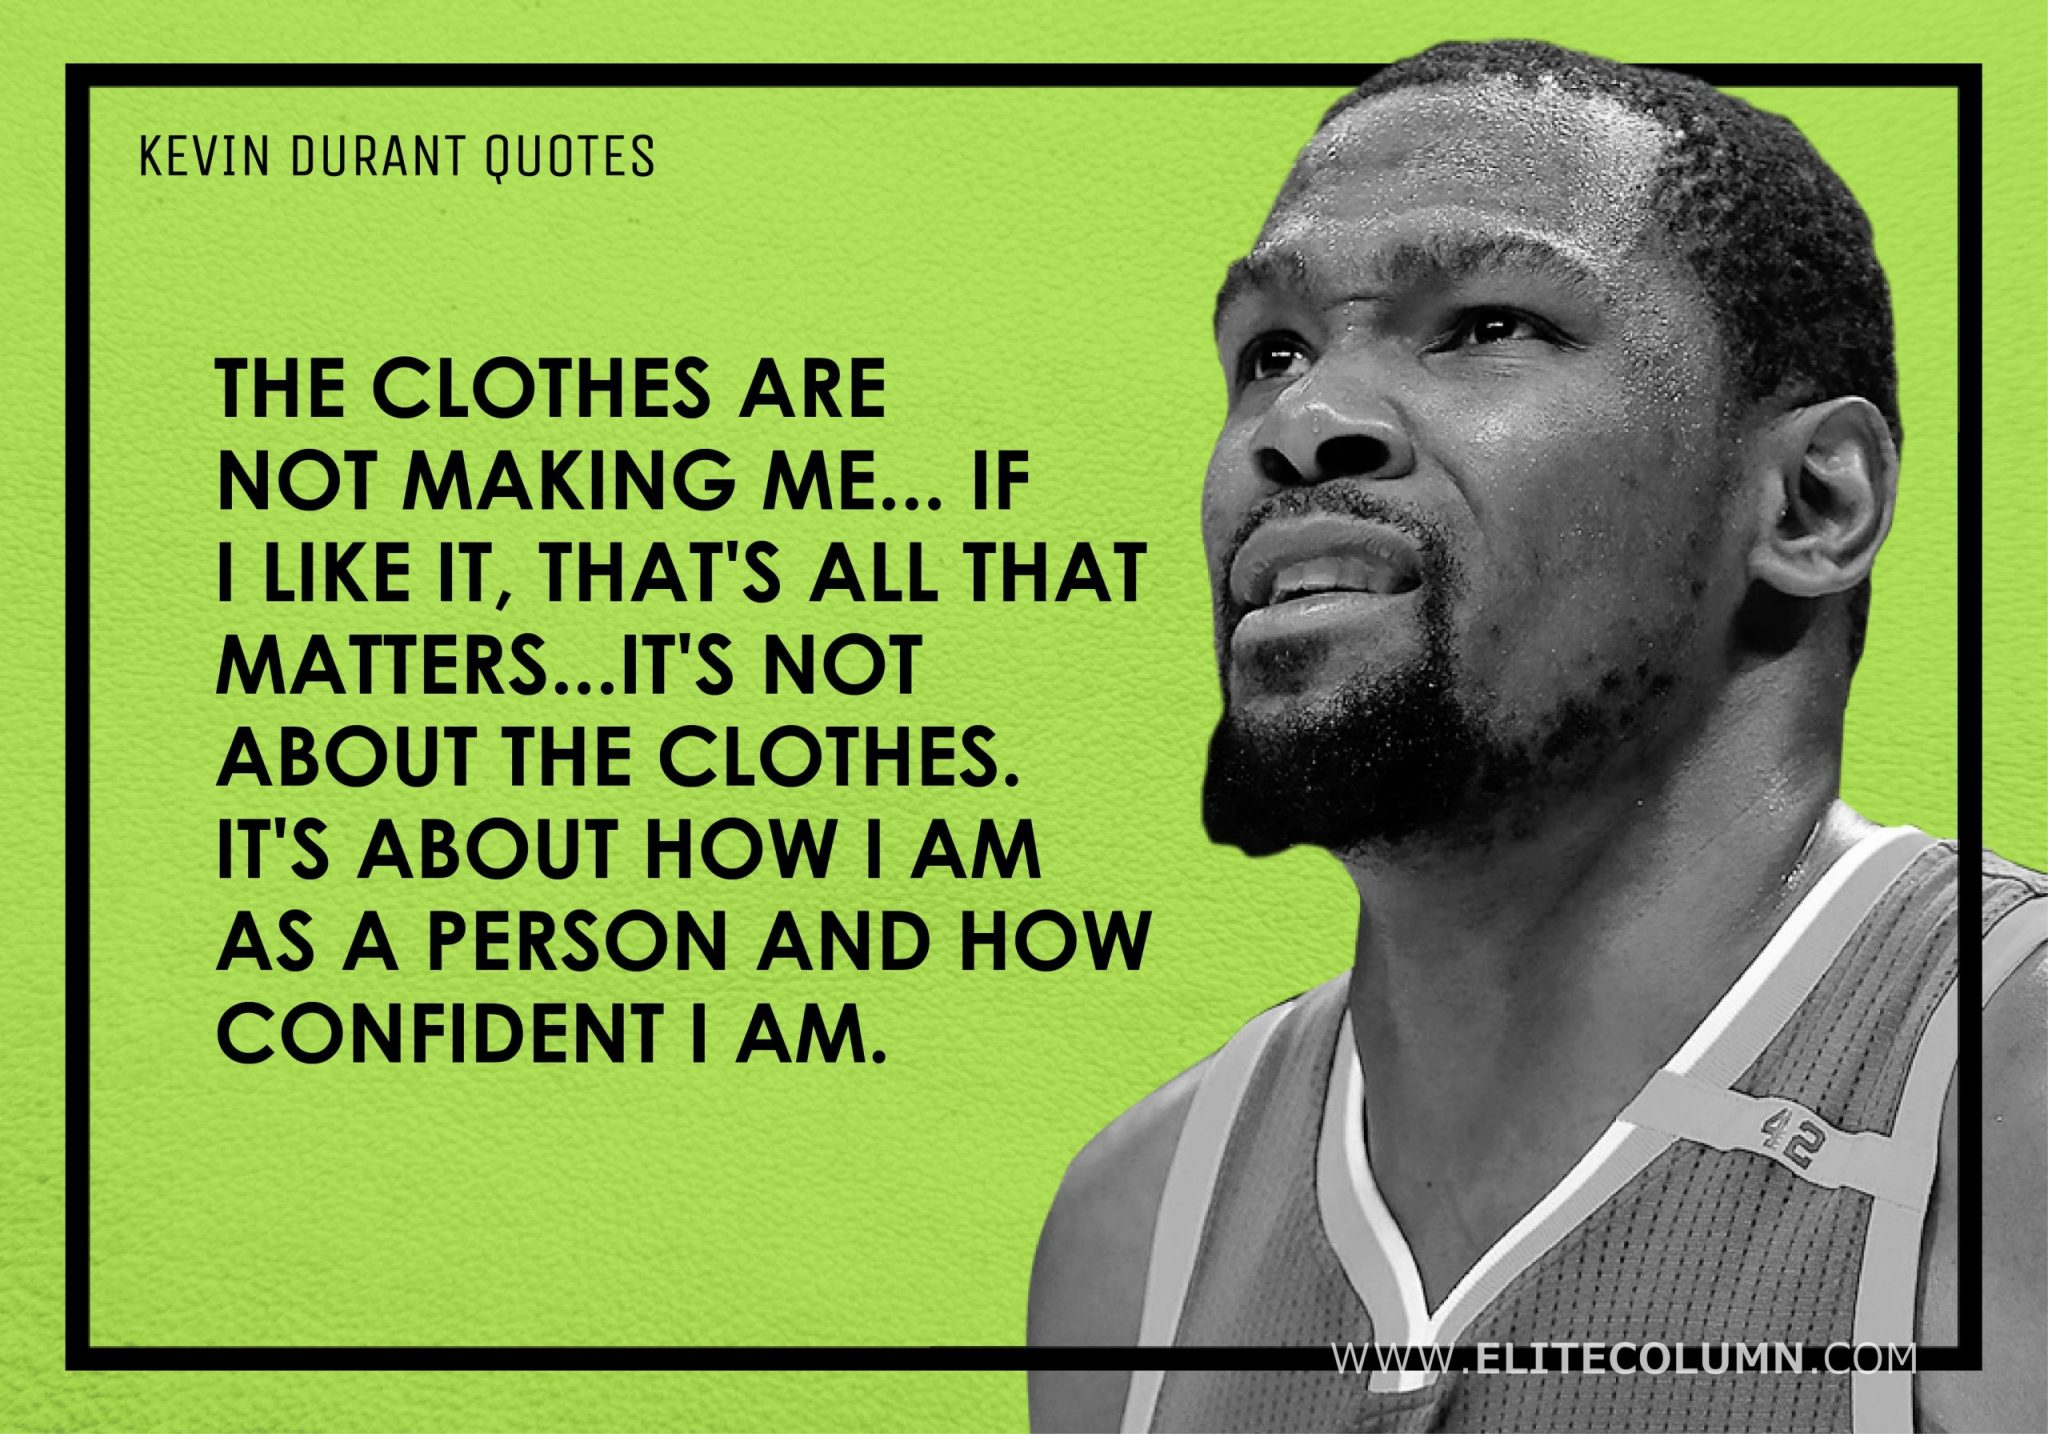 Kevin Durant Quotes (10)